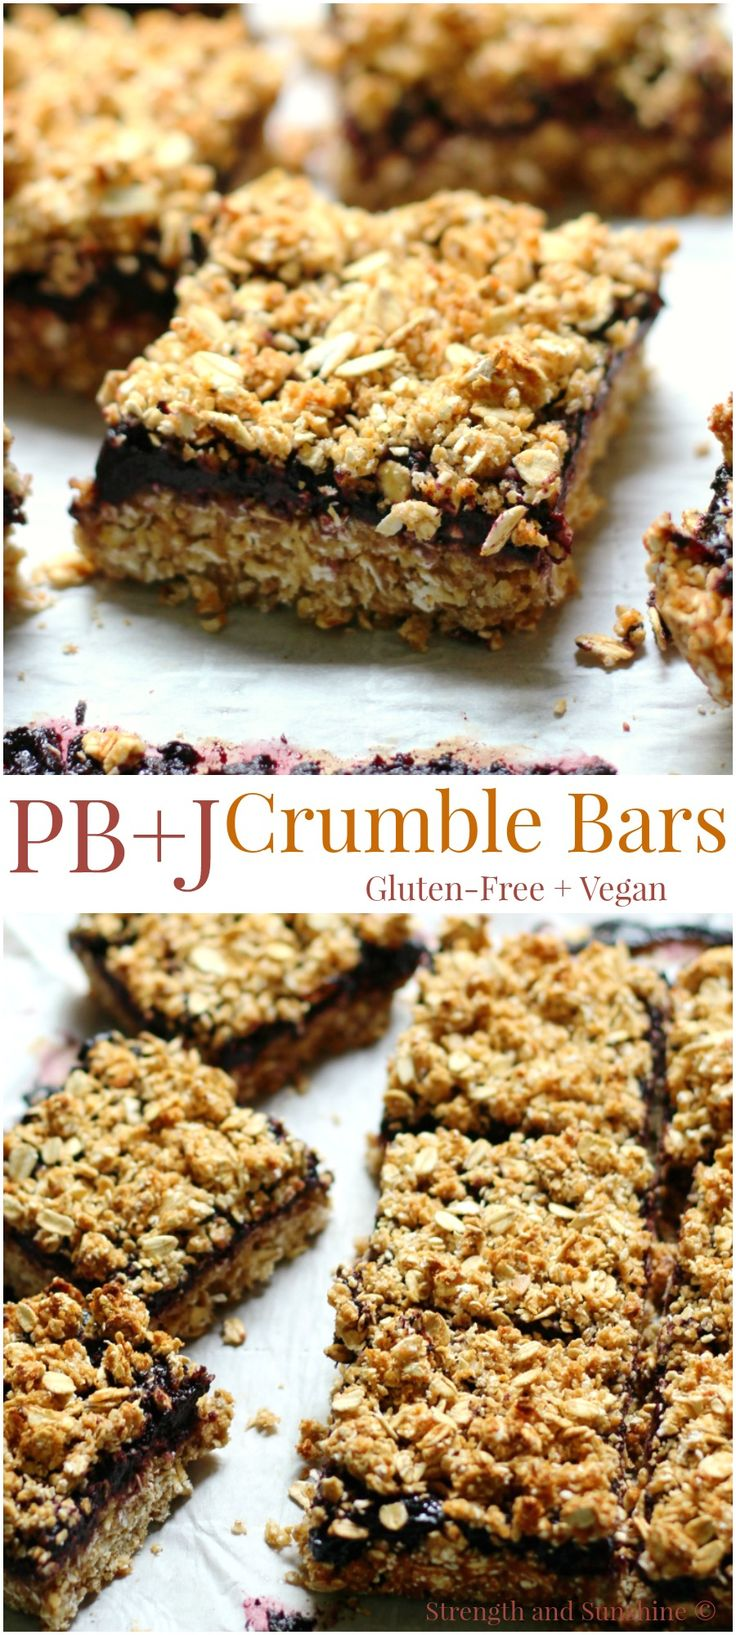 Featured at #CreateItThursday: Peanut Butter & Jelly Crumble Bars | Strength and Sunshine @RebeccaGF666 Everyone's childhood favorite sandwich baked into a delicious gluten-free and vegan bar! Peanut Butter & Jelly Crumble Bars that can be eaten for breakfast, lunch, as a snack, or dessert! This healthy bar recipe will have you ditching the bread!